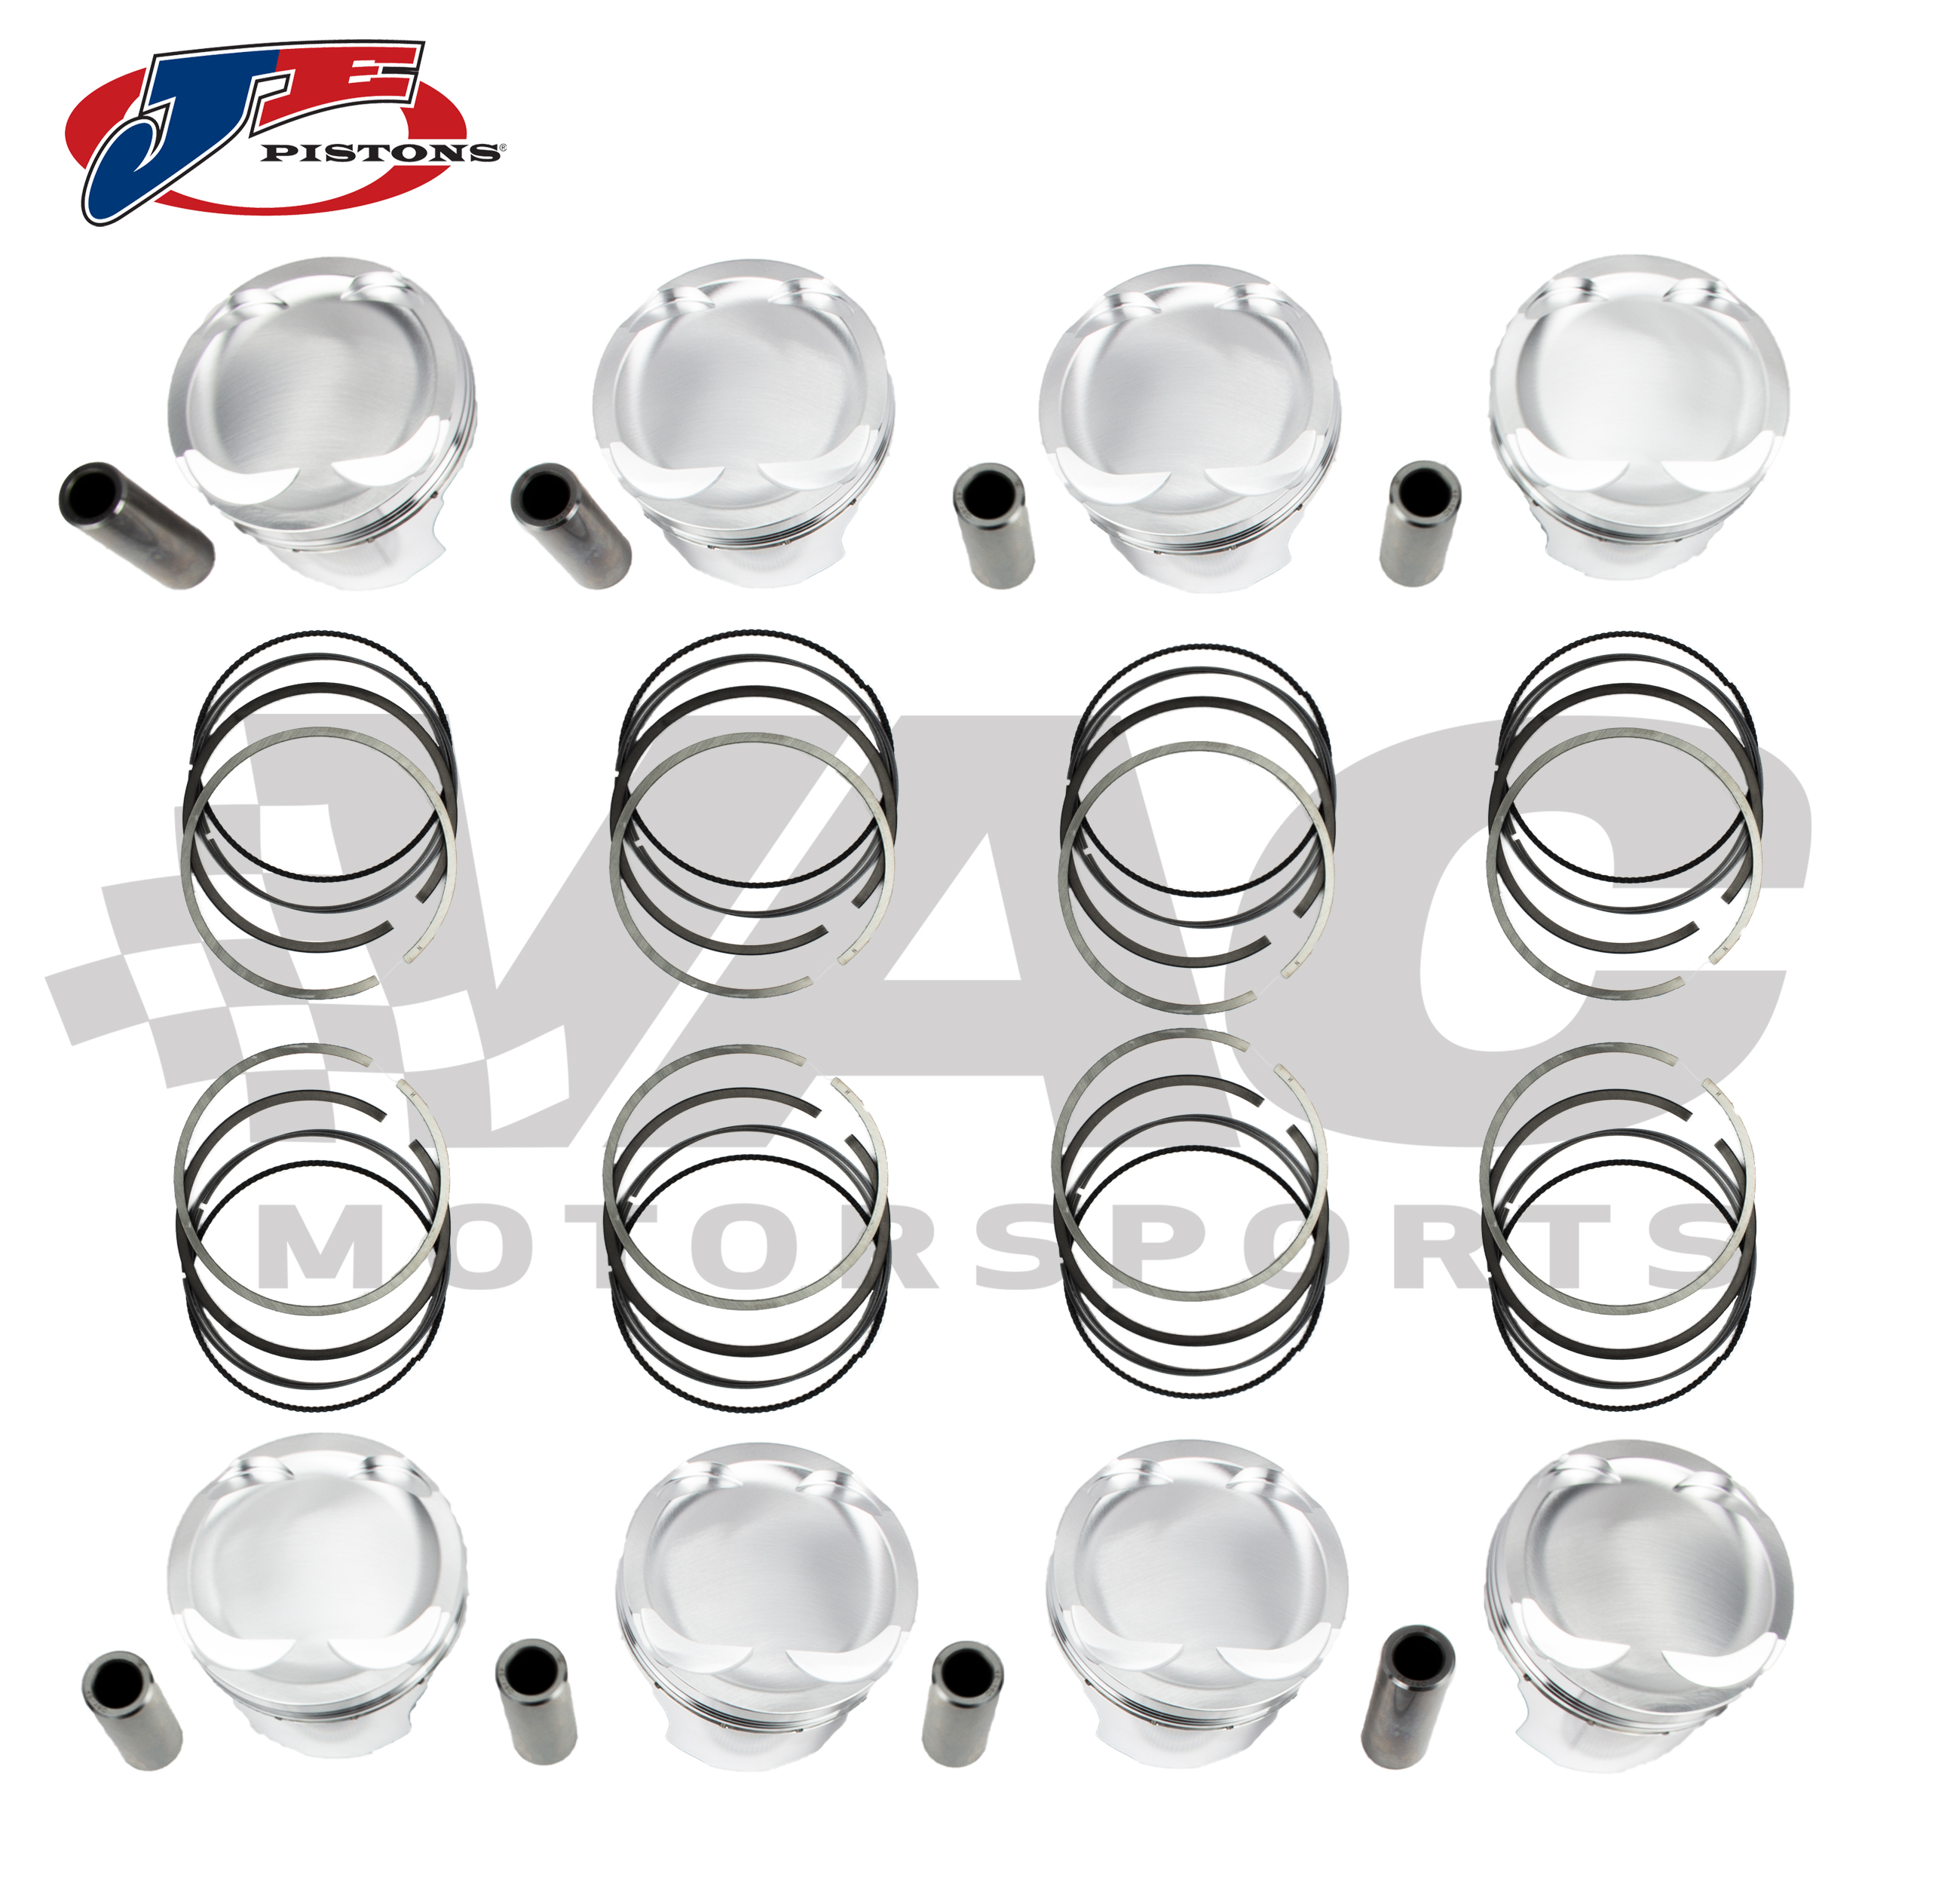 JE Pistons Forged Piston Set (BMW S62) THUMBNAIL